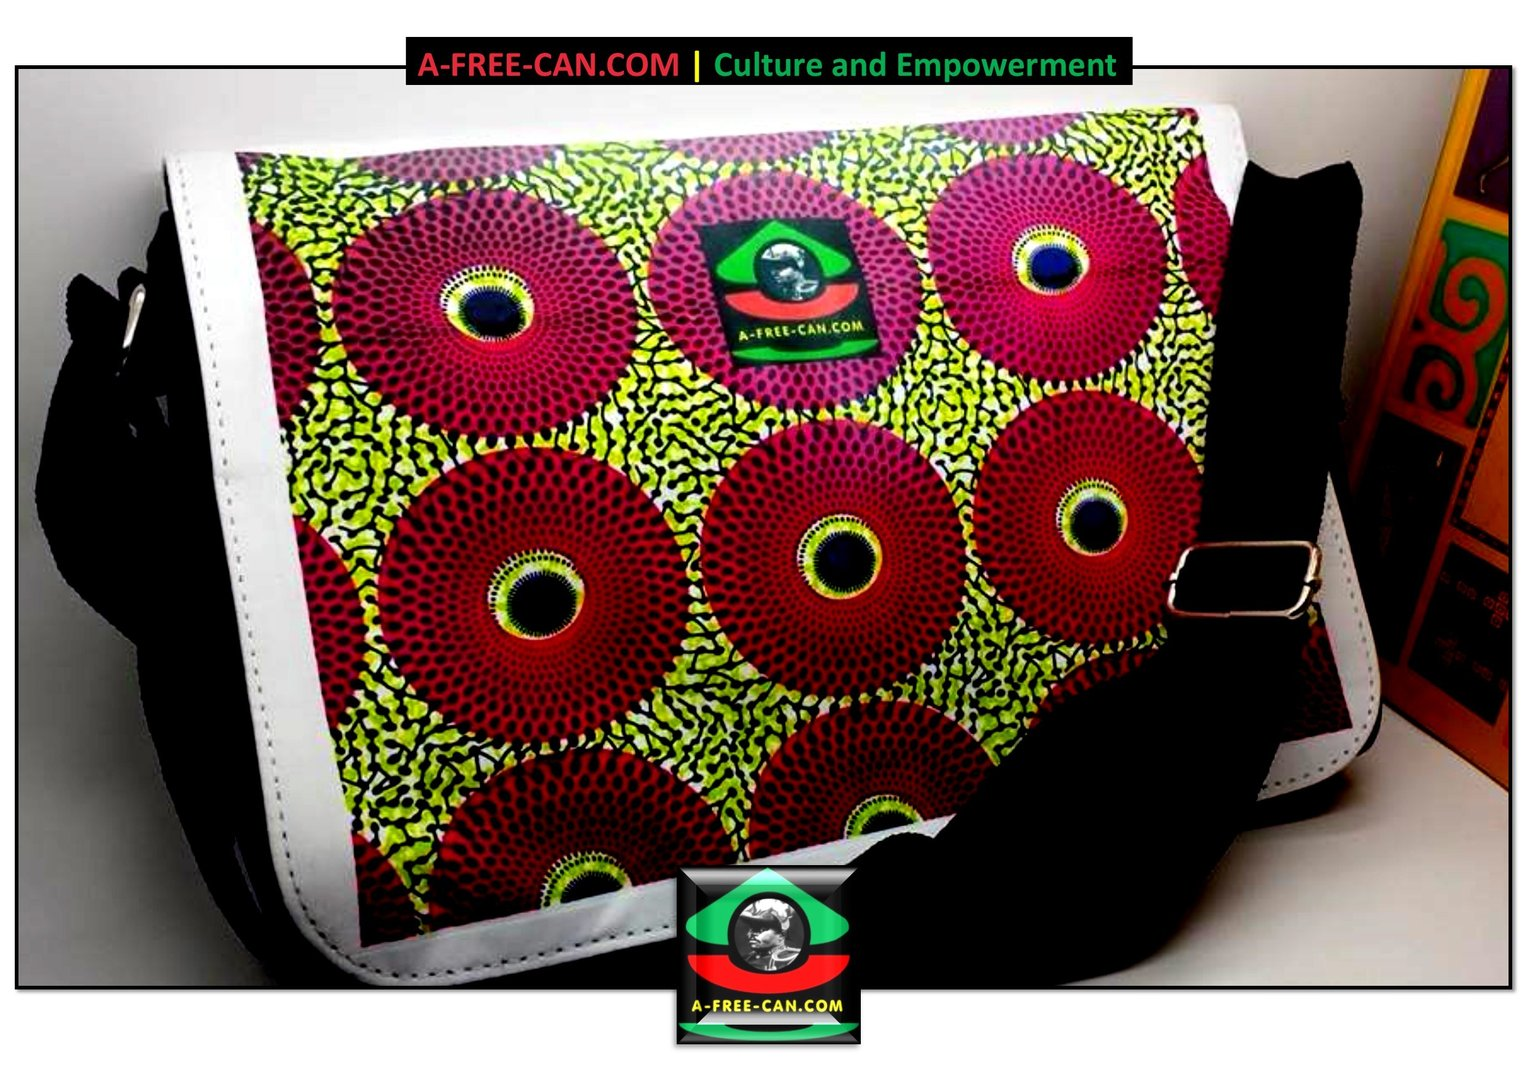 MWINI (Sac / Bag / Bolsa) by A-FREE-CAN.COM